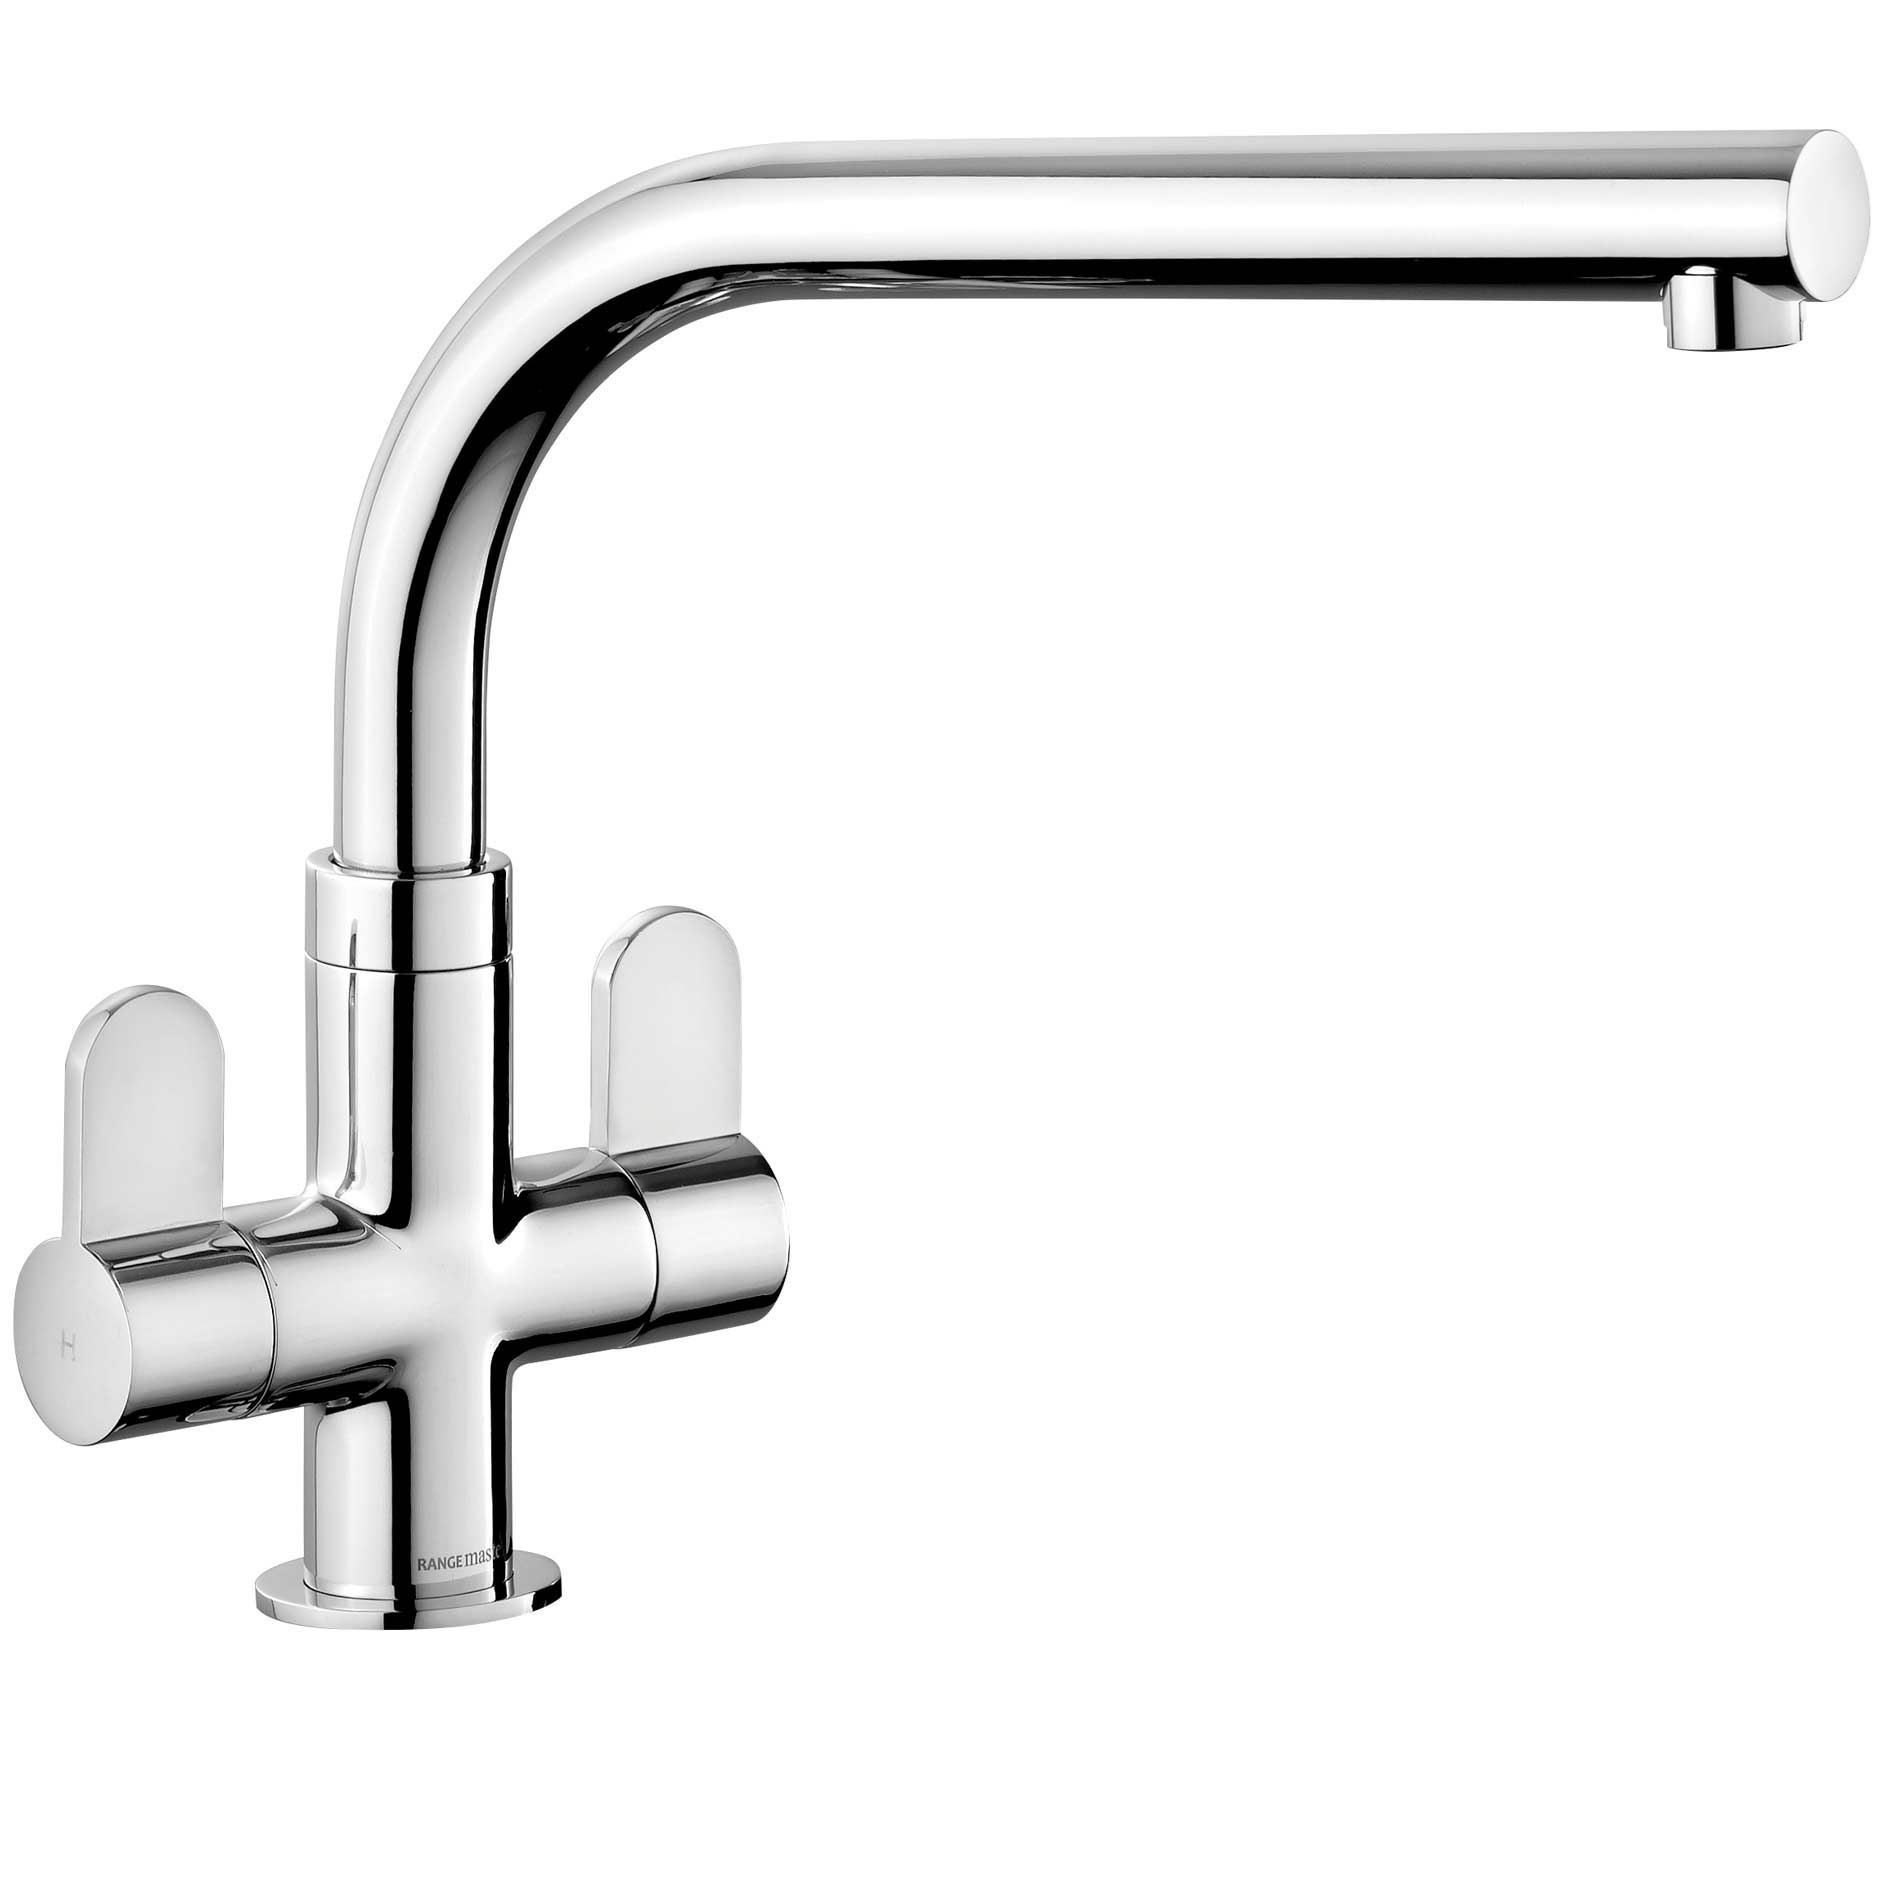 Rangemaster Salorno Tsn1cm Chrome Tap Kitchen Sinks Taps